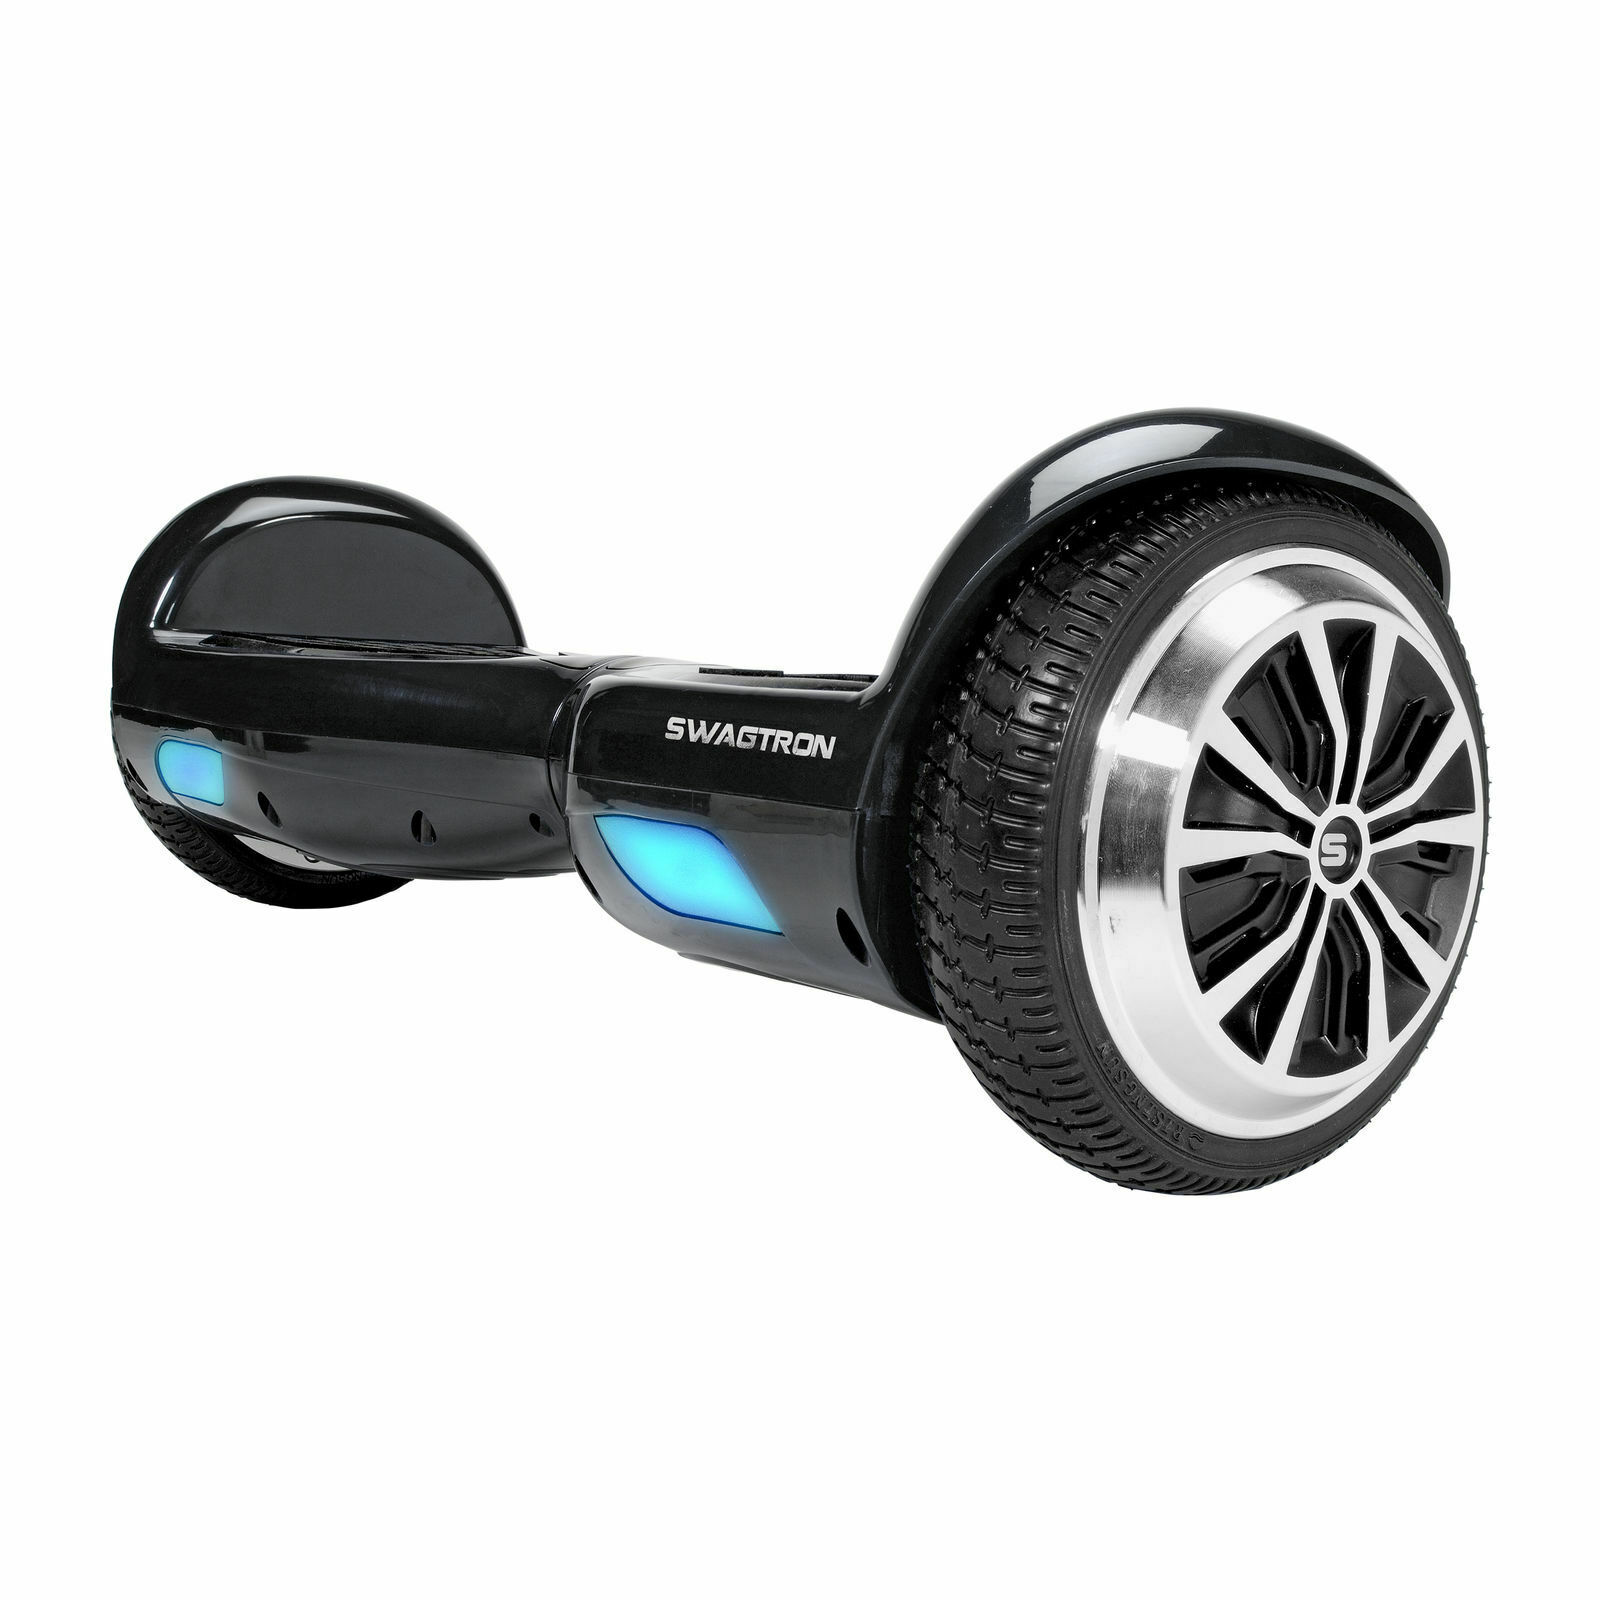 Swagtron T881 Electric Scooter